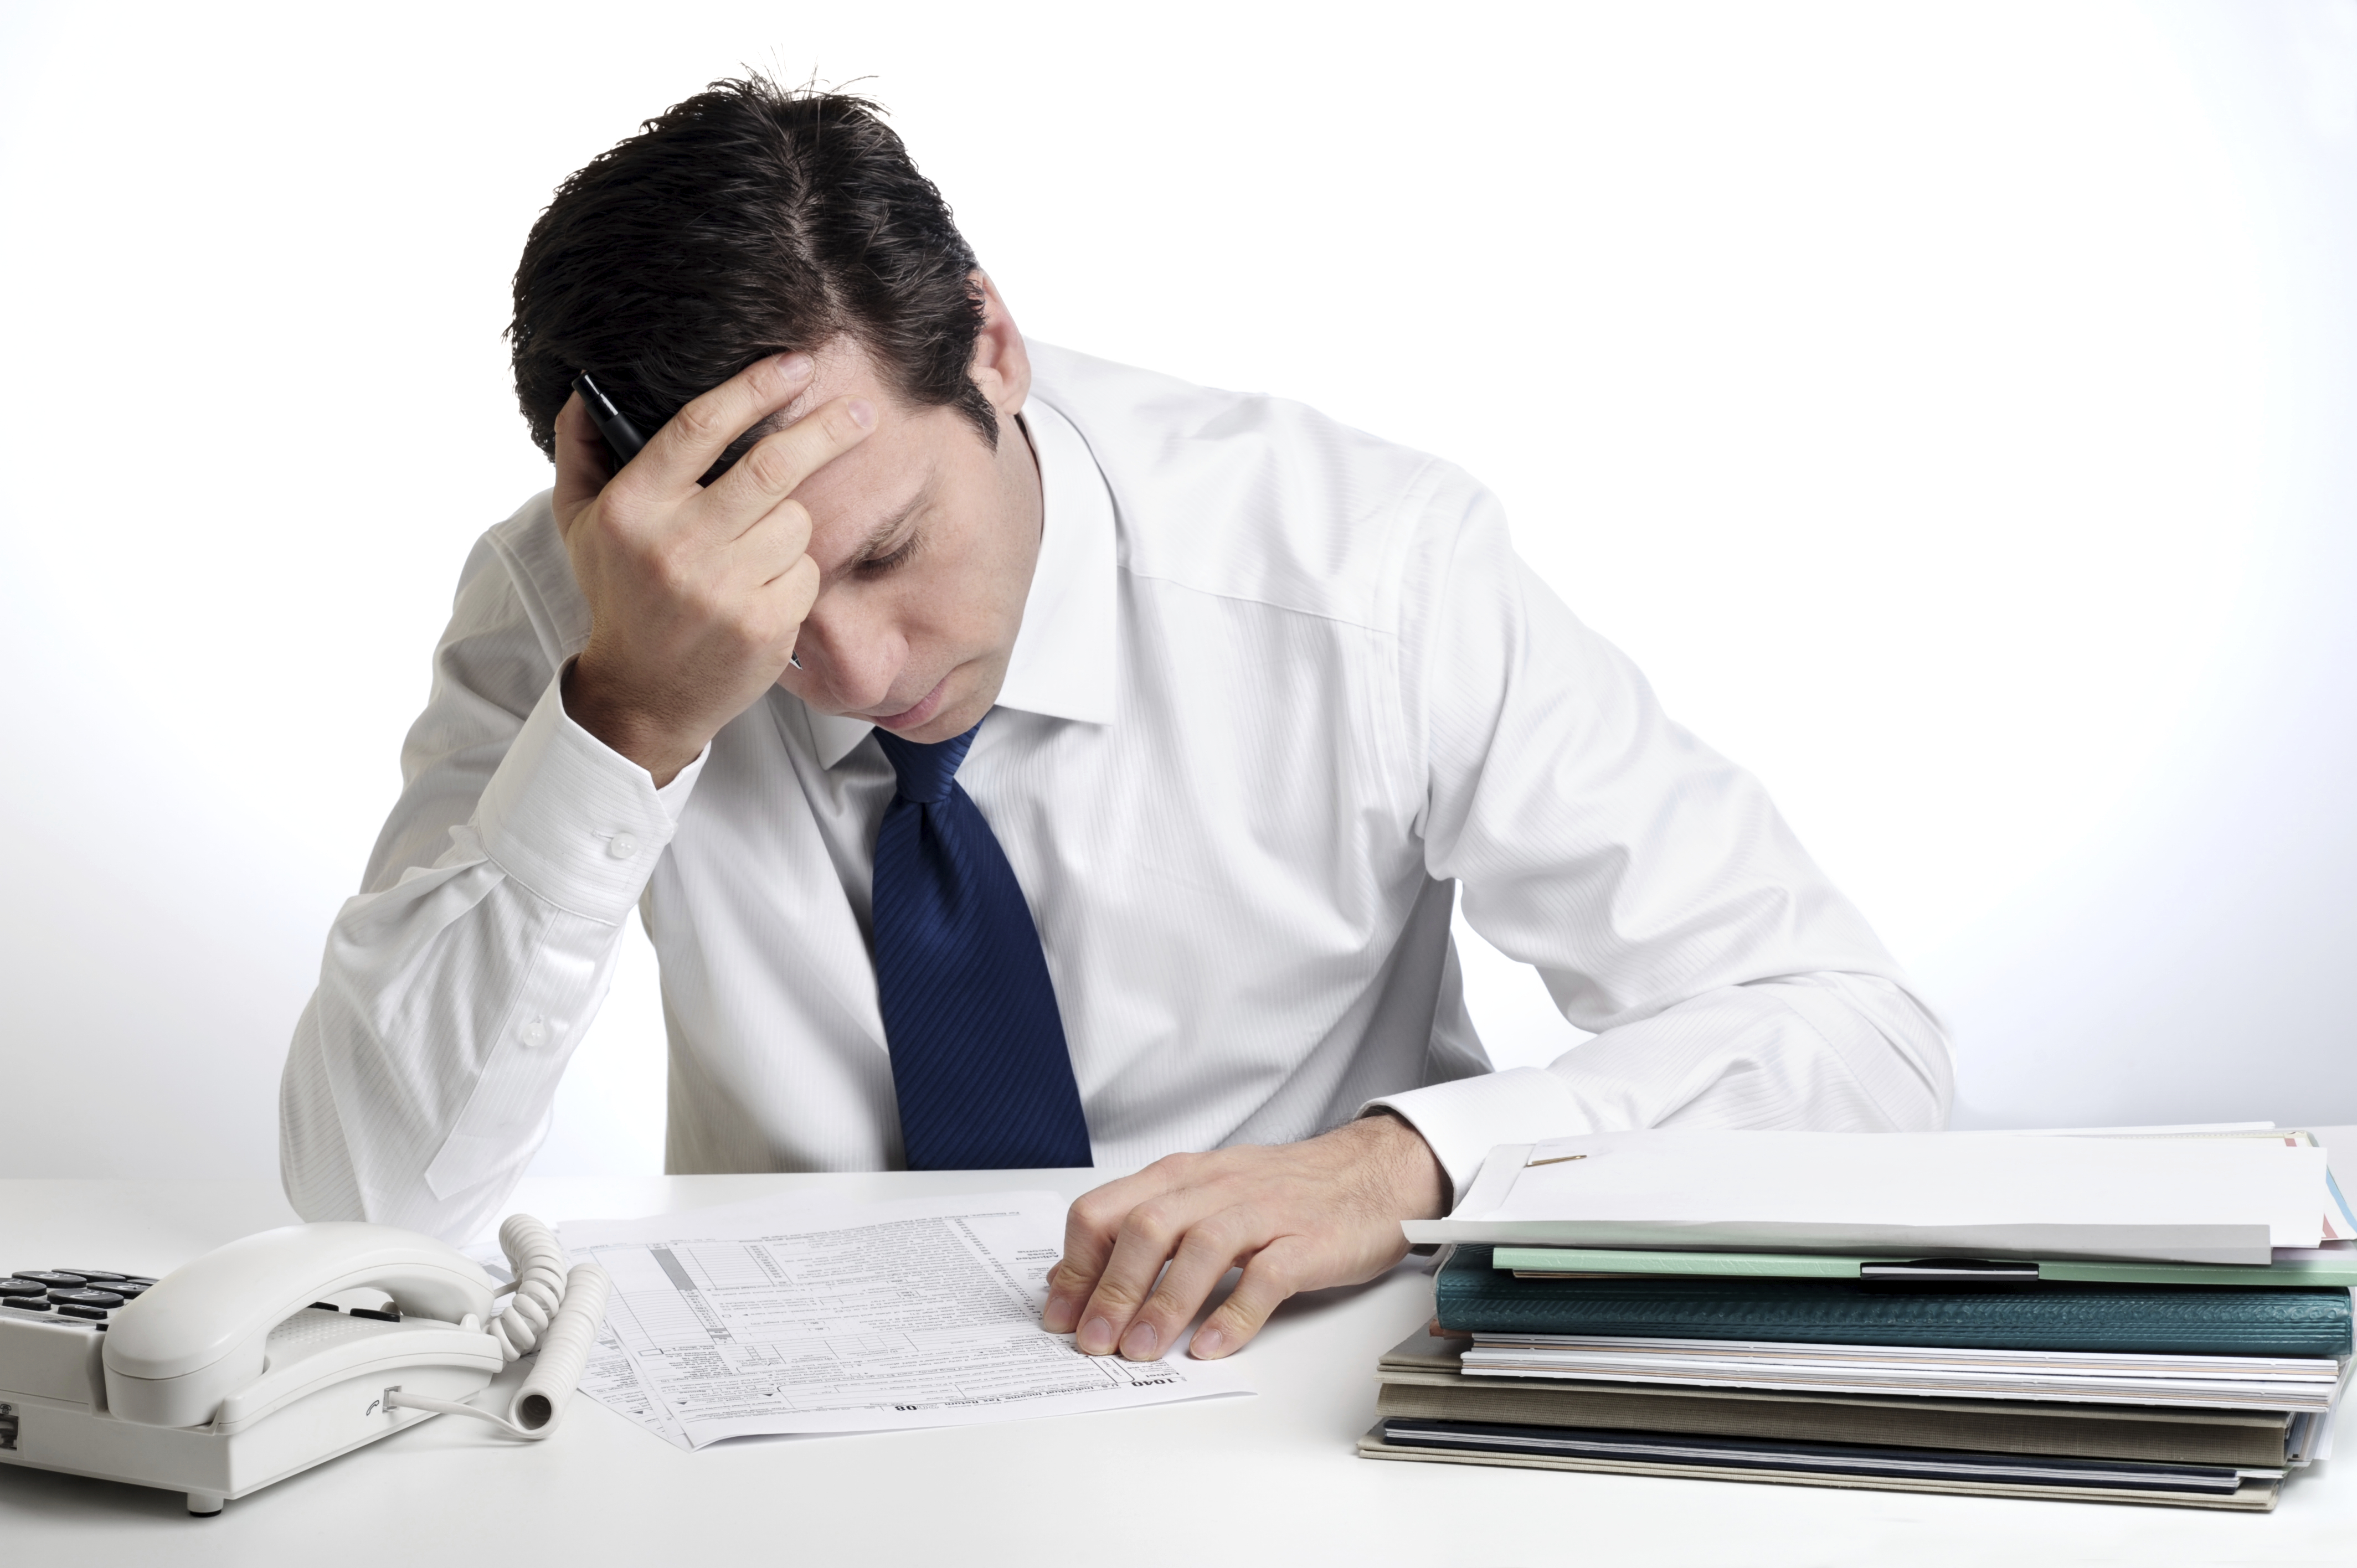 Business Man Sitting at a Desk Struggling to Complete Paperwork